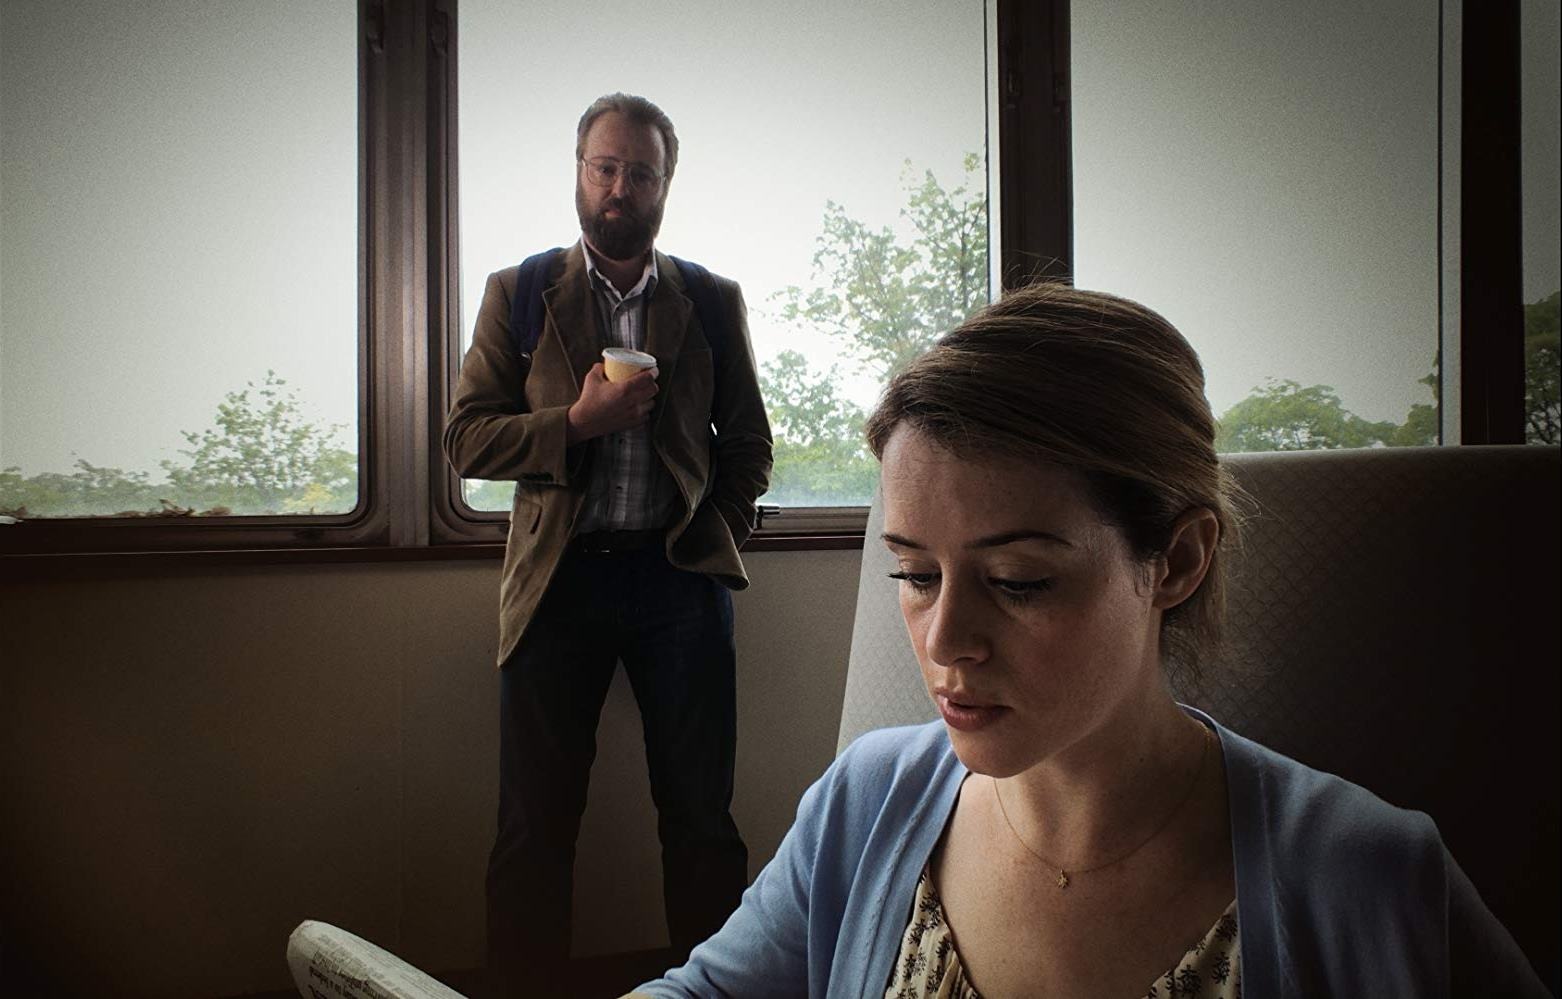 Claire Foy and her stalker Joshua Leonard in Unsane (2018)